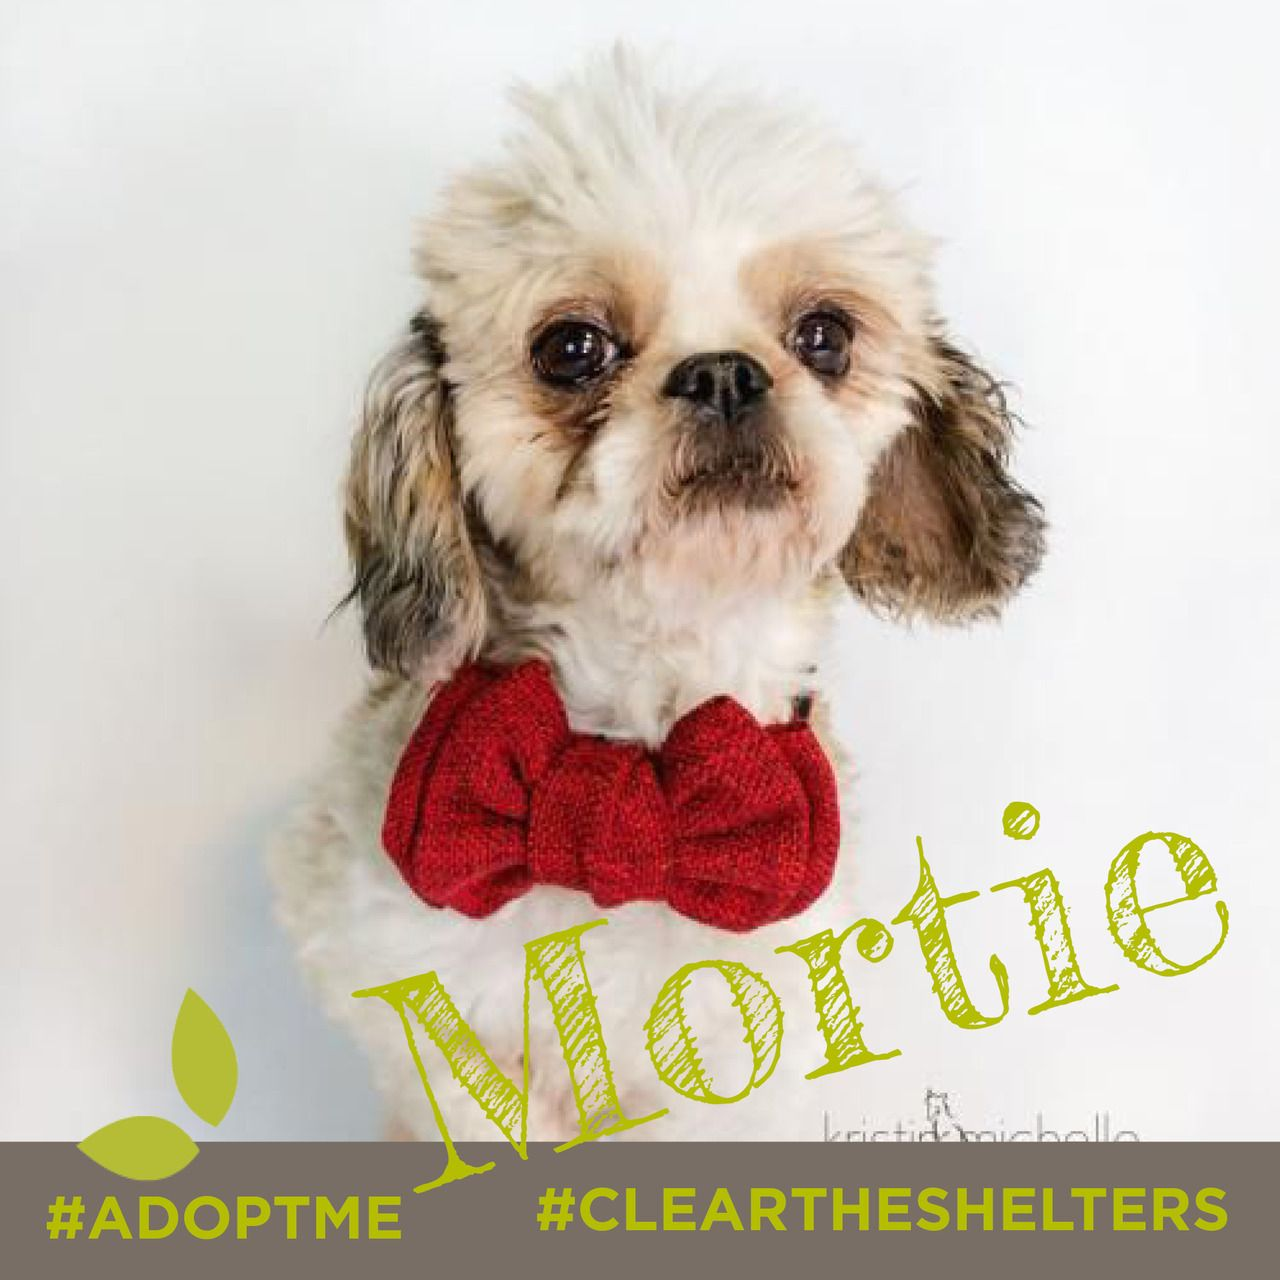 July 23rd is Clear the Shelters day. We're sharing adoptable animals now through the end of the month! Lets clean those shelters out of cuties like these!  Meet Mortie the 4 year old Shih Tzu Isn't he a sweetheart? He is currently being cared for by our friends at  Under Dog Rescue MN.